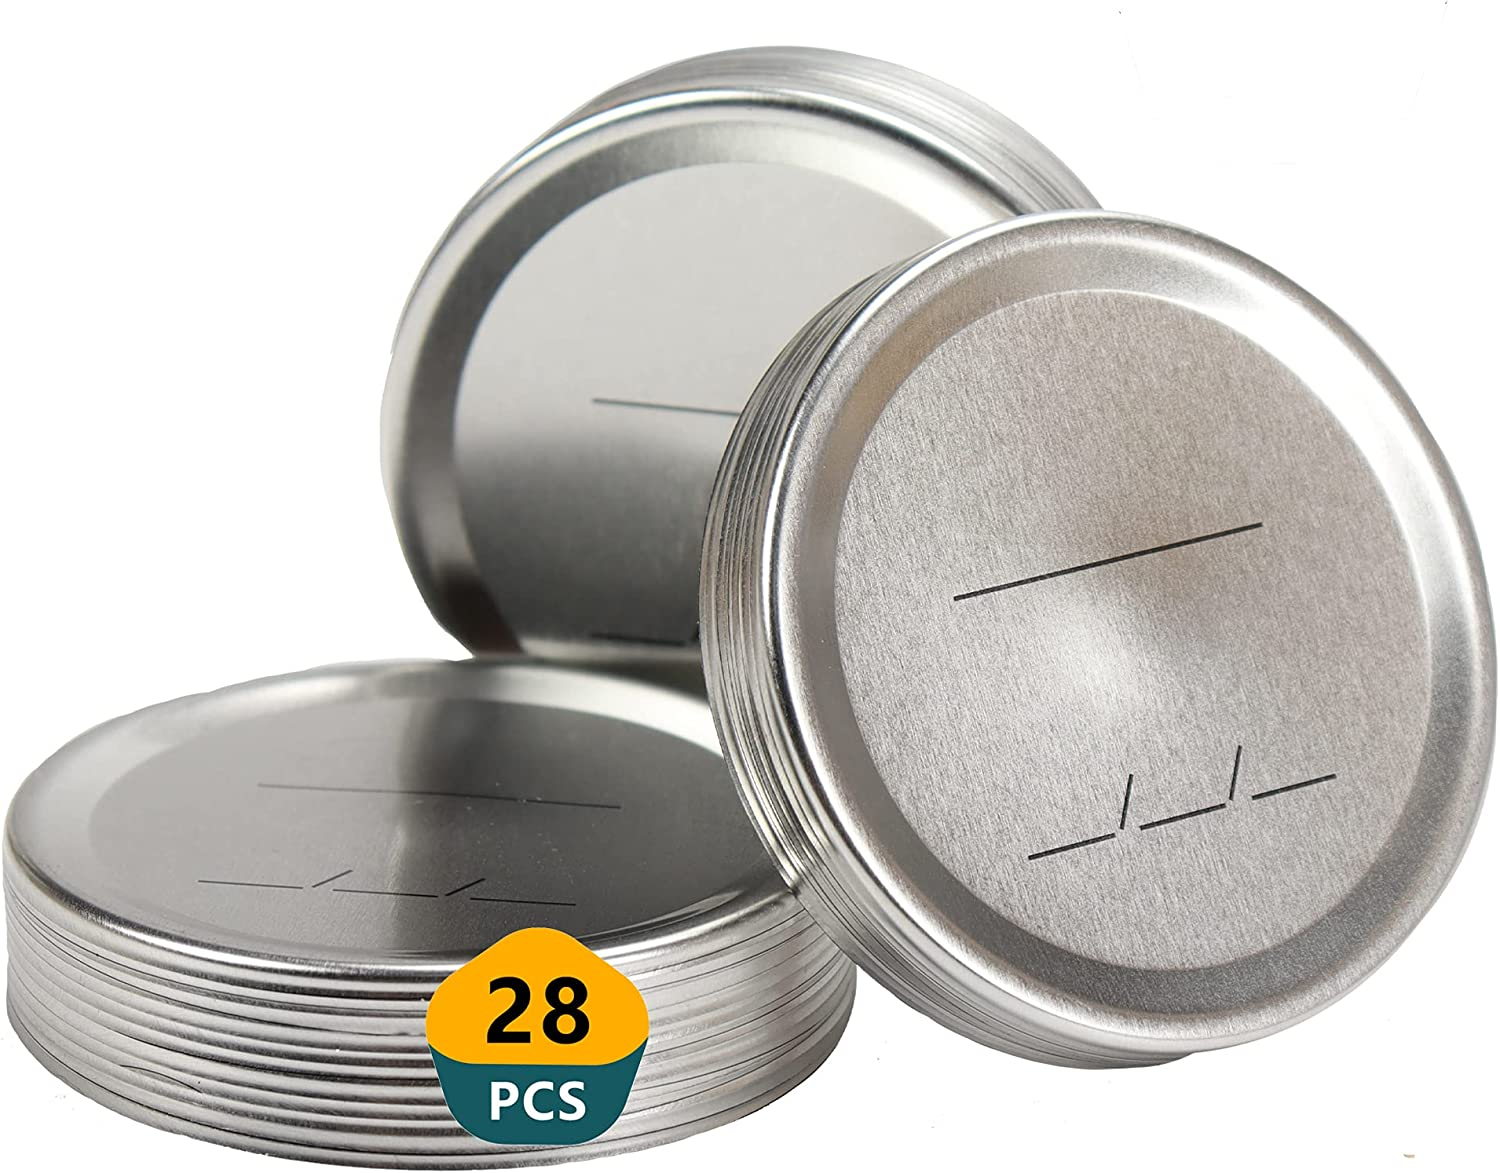 28 Counts 70mm Regular Mouth Canning Lids,Split-Type Metal Crock Pot Mason Jar Lid with Leak Proof & Airtight Seal Features for Food Grade Material,100% Fit & Airtight for Storage and Secure Pressure Canner Lids (28Pcs-70mm)